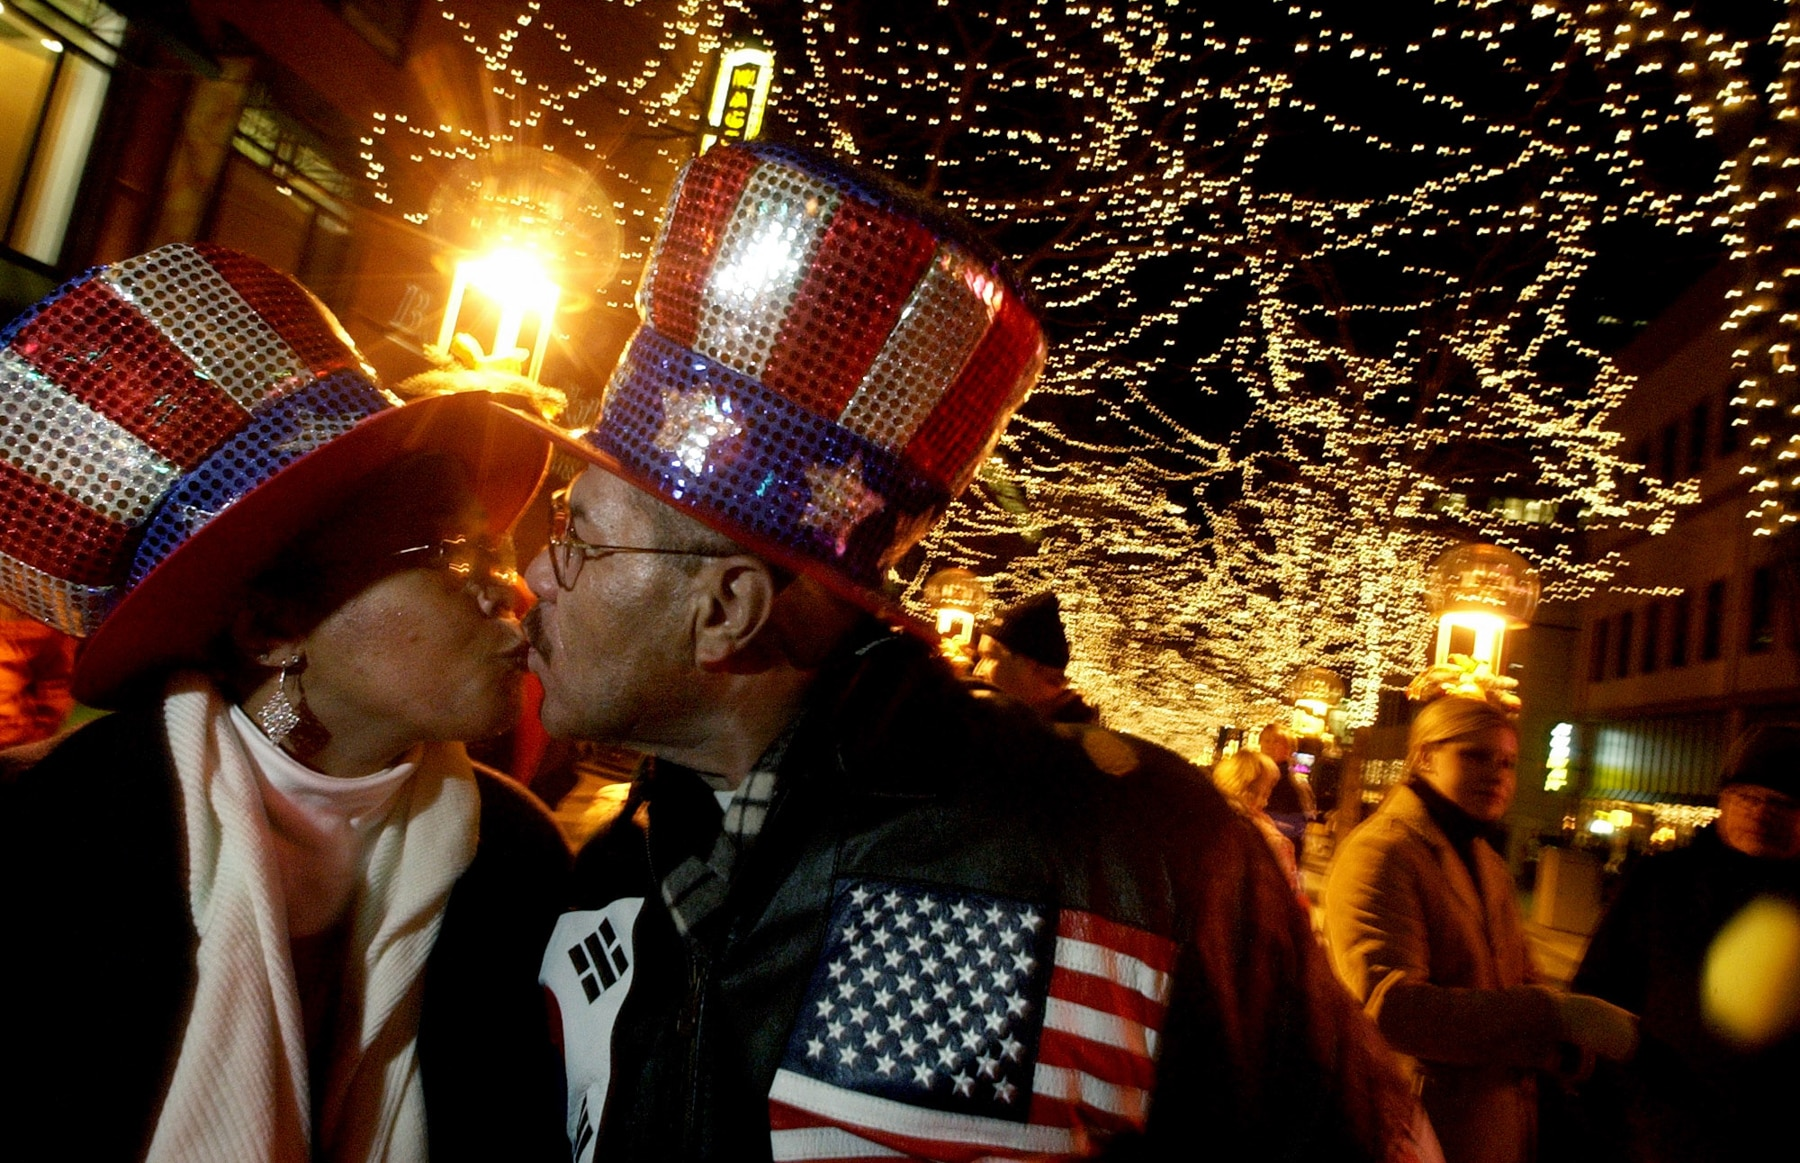 Dos personas con gorros rojo, blanco y azul besándose (© Craig Walker/Denver Post vía Getty Images)